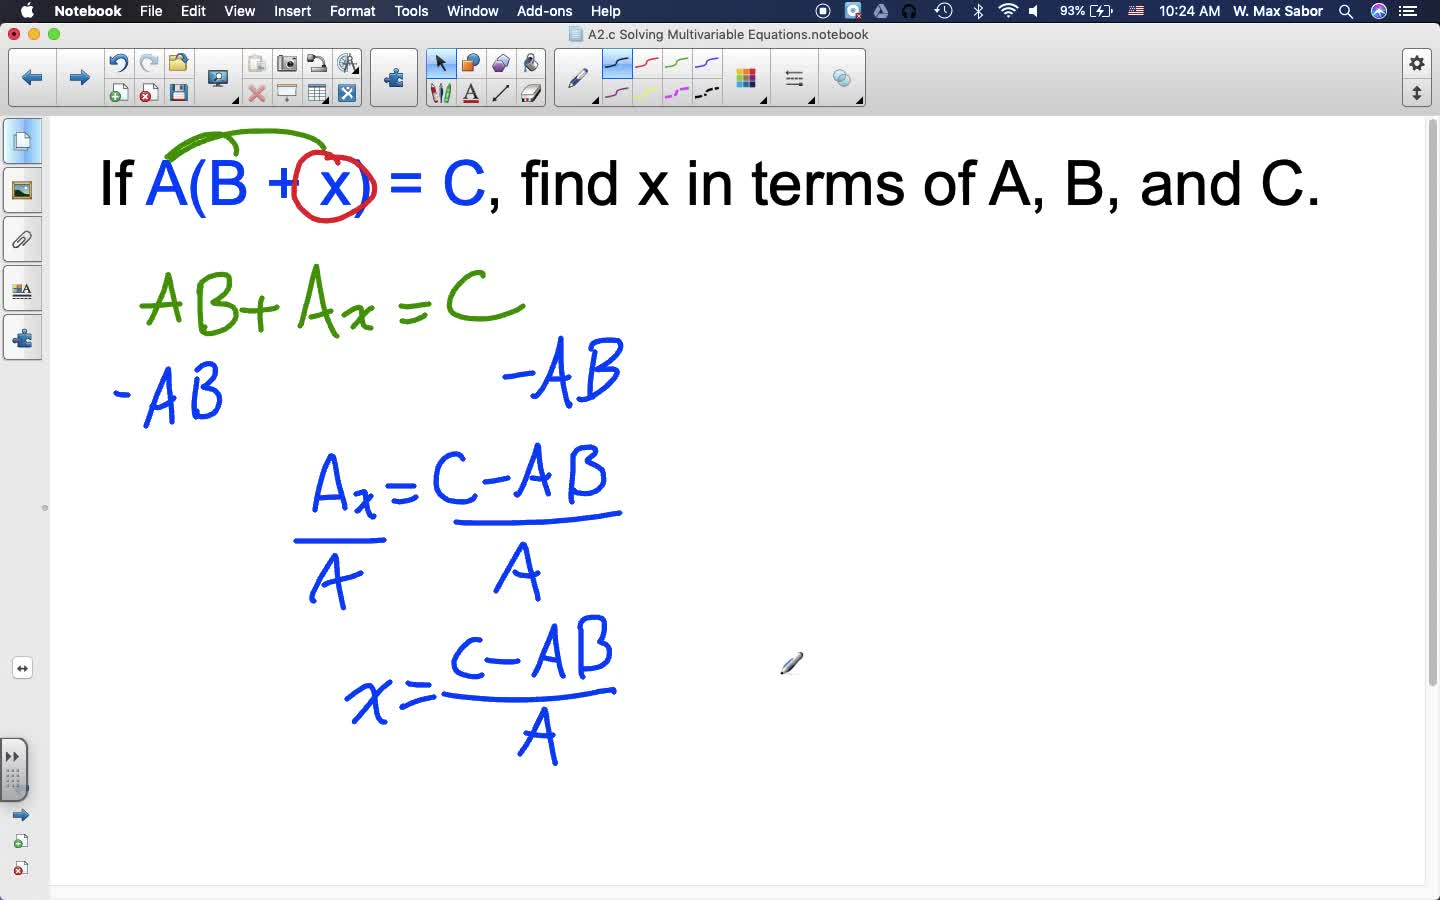 A2.c Solving Multivariable Equations